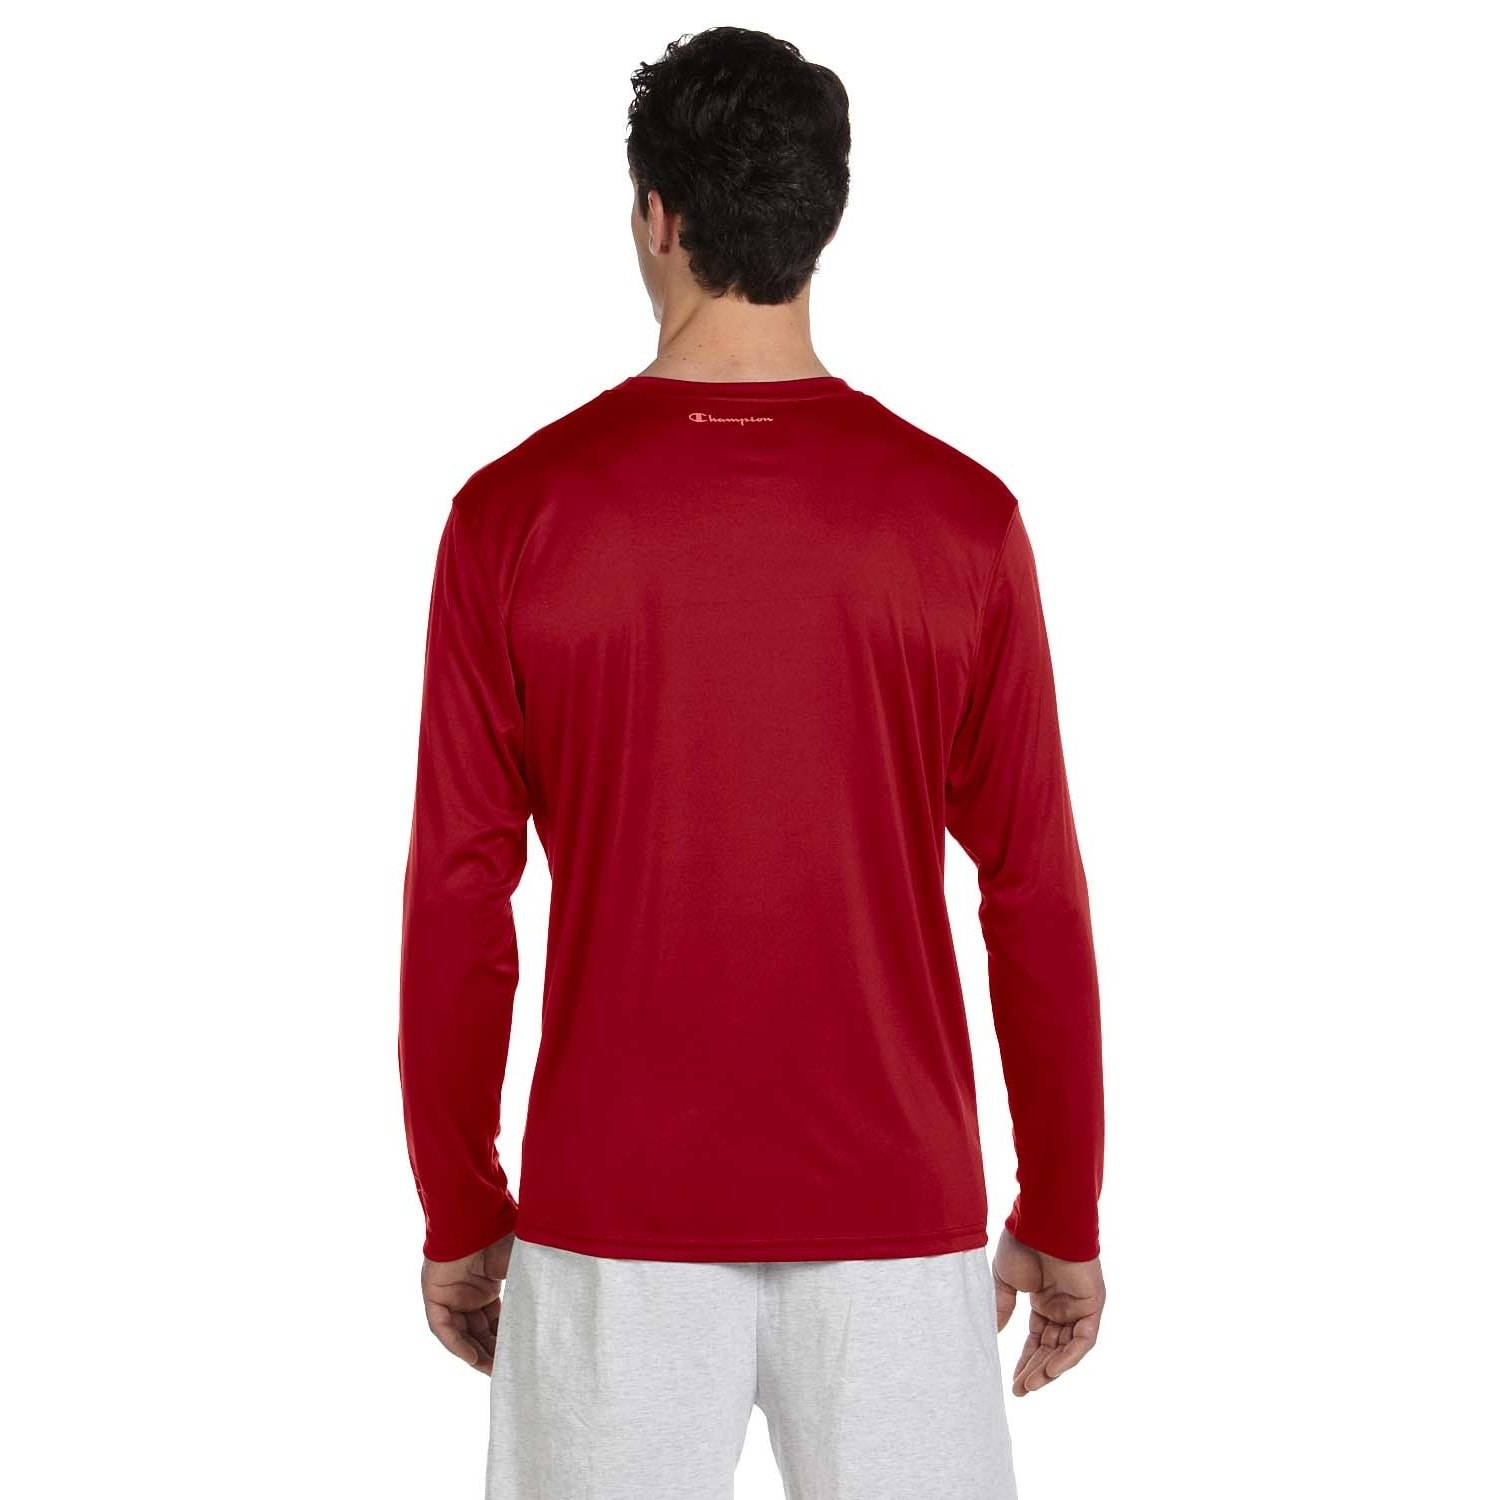 e9adc15c4 Shop Champion Men's Double Dry Performance Long Sleeve T-shirt - On Sale -  Free Shipping On Orders Over $45 - Overstock - 8984873